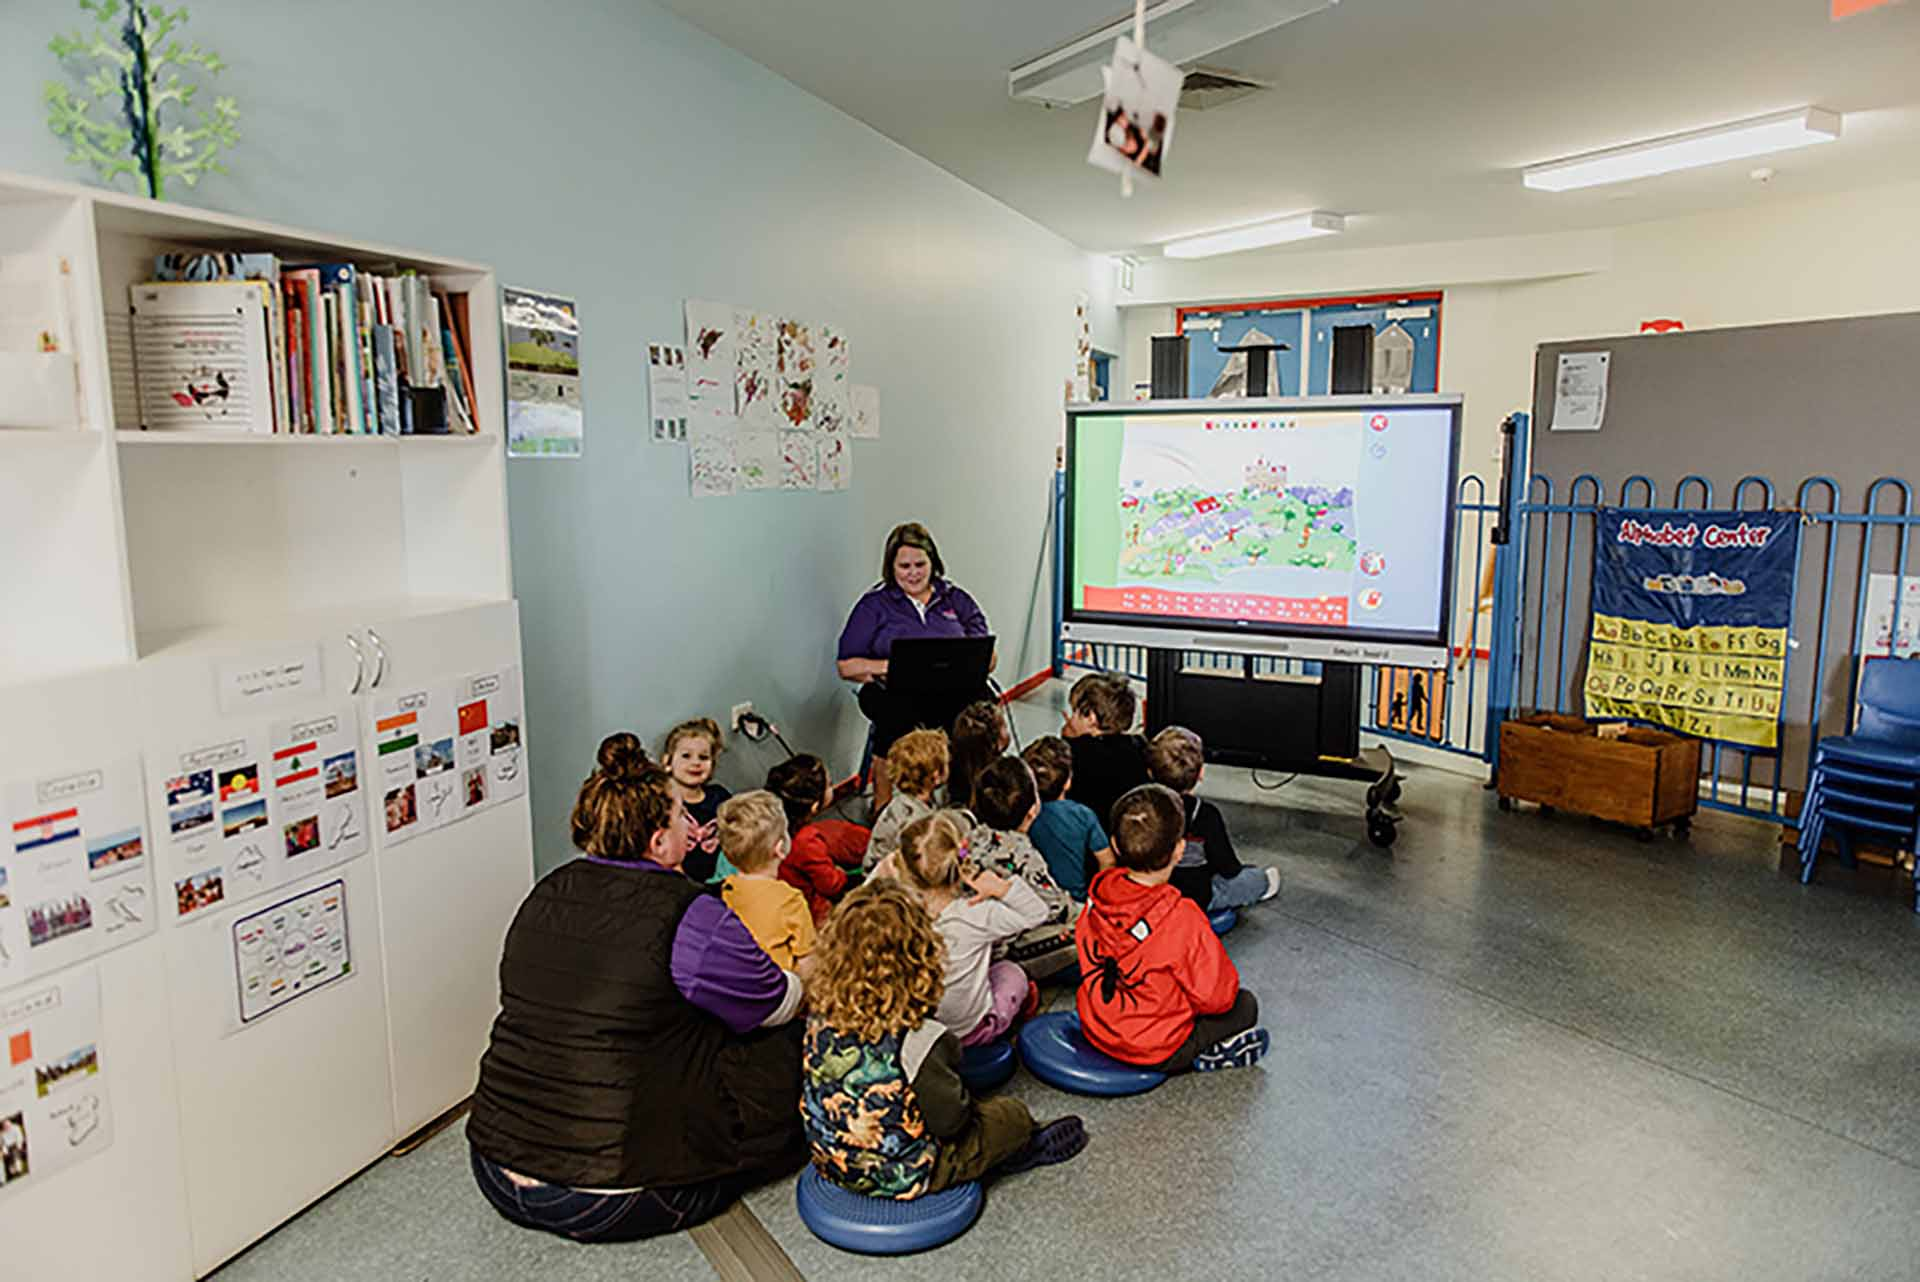 Children in class at Centrepoint child centre